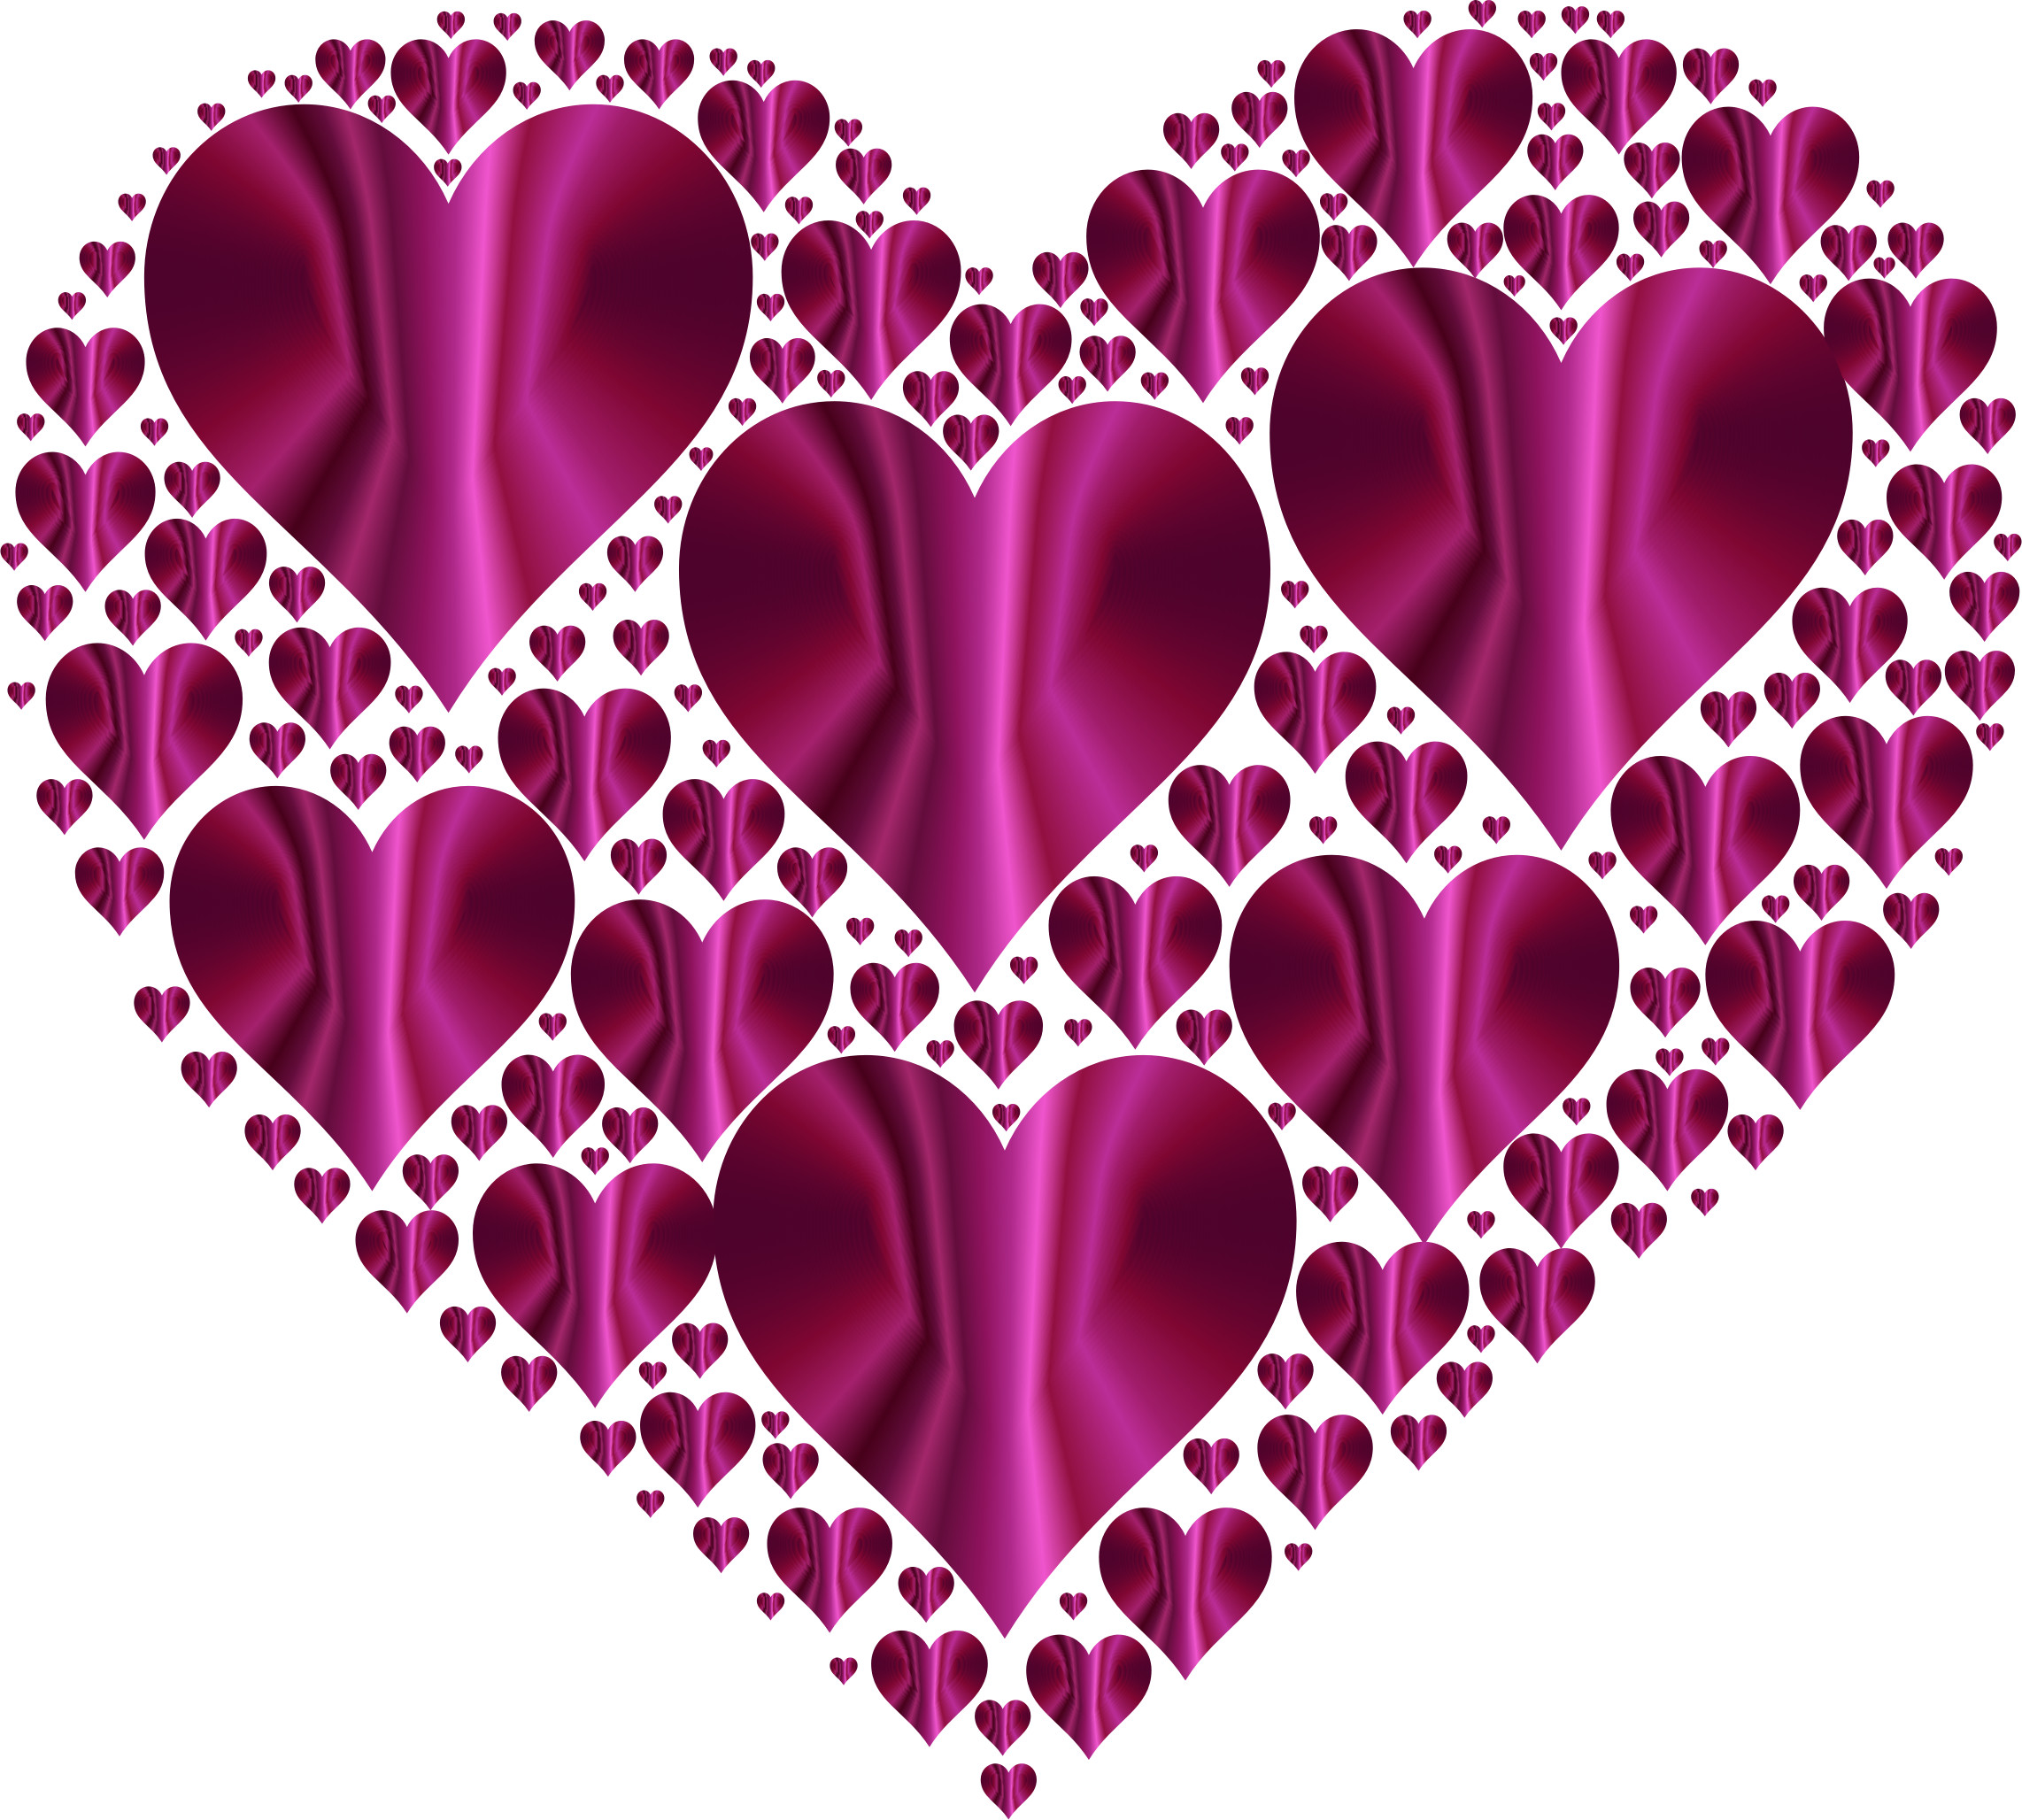 Res: 2284x2056, pink hearts pictures